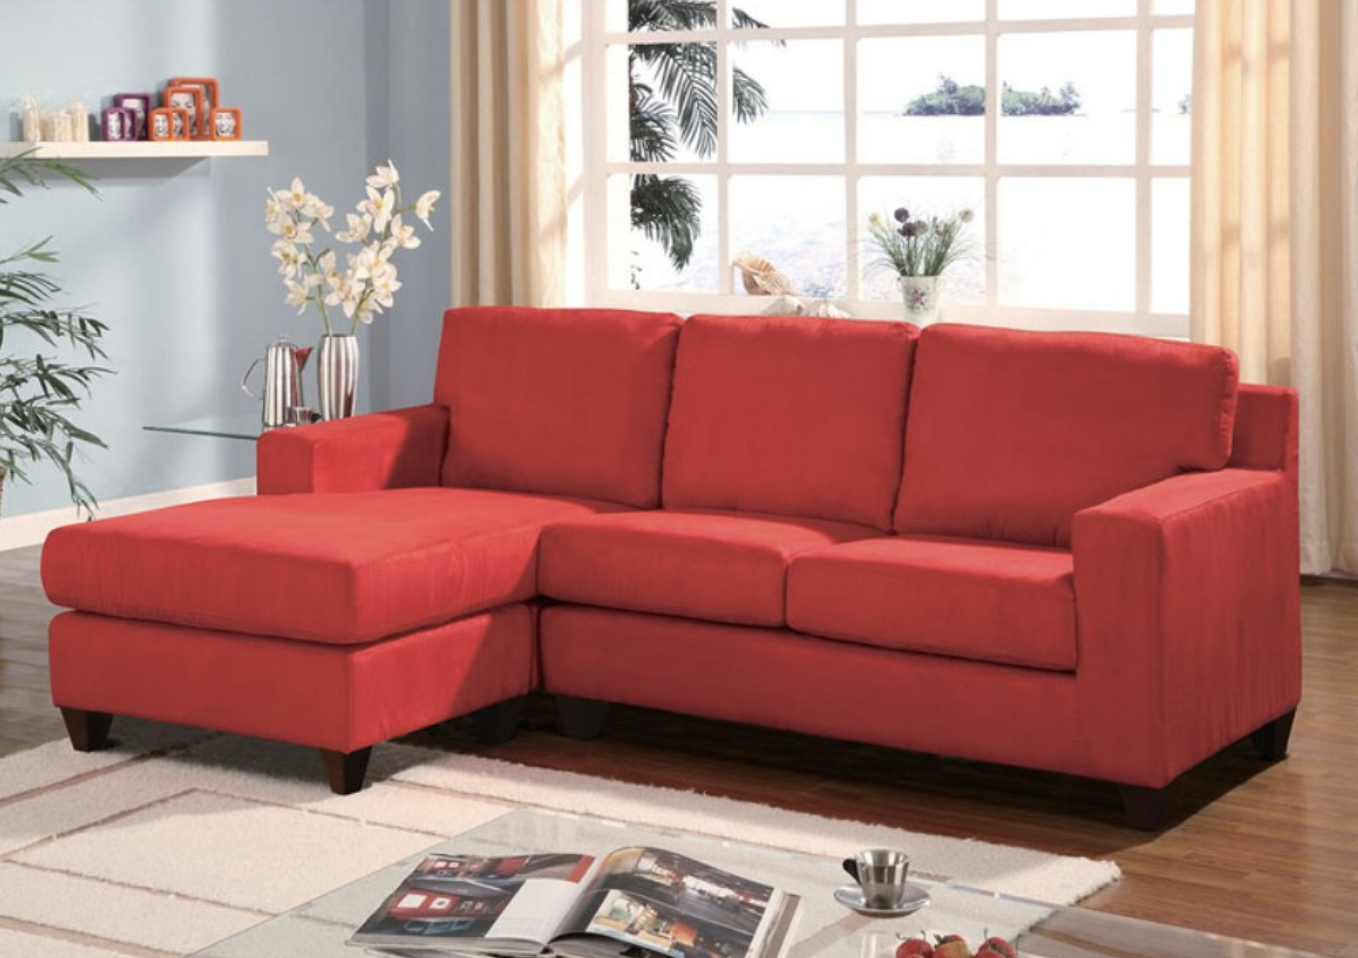 100x80 Sectional Sofas With Regard To Most Popular 75 Modern Sectional Sofas For Small Spaces (2018) (View 11 of 20)